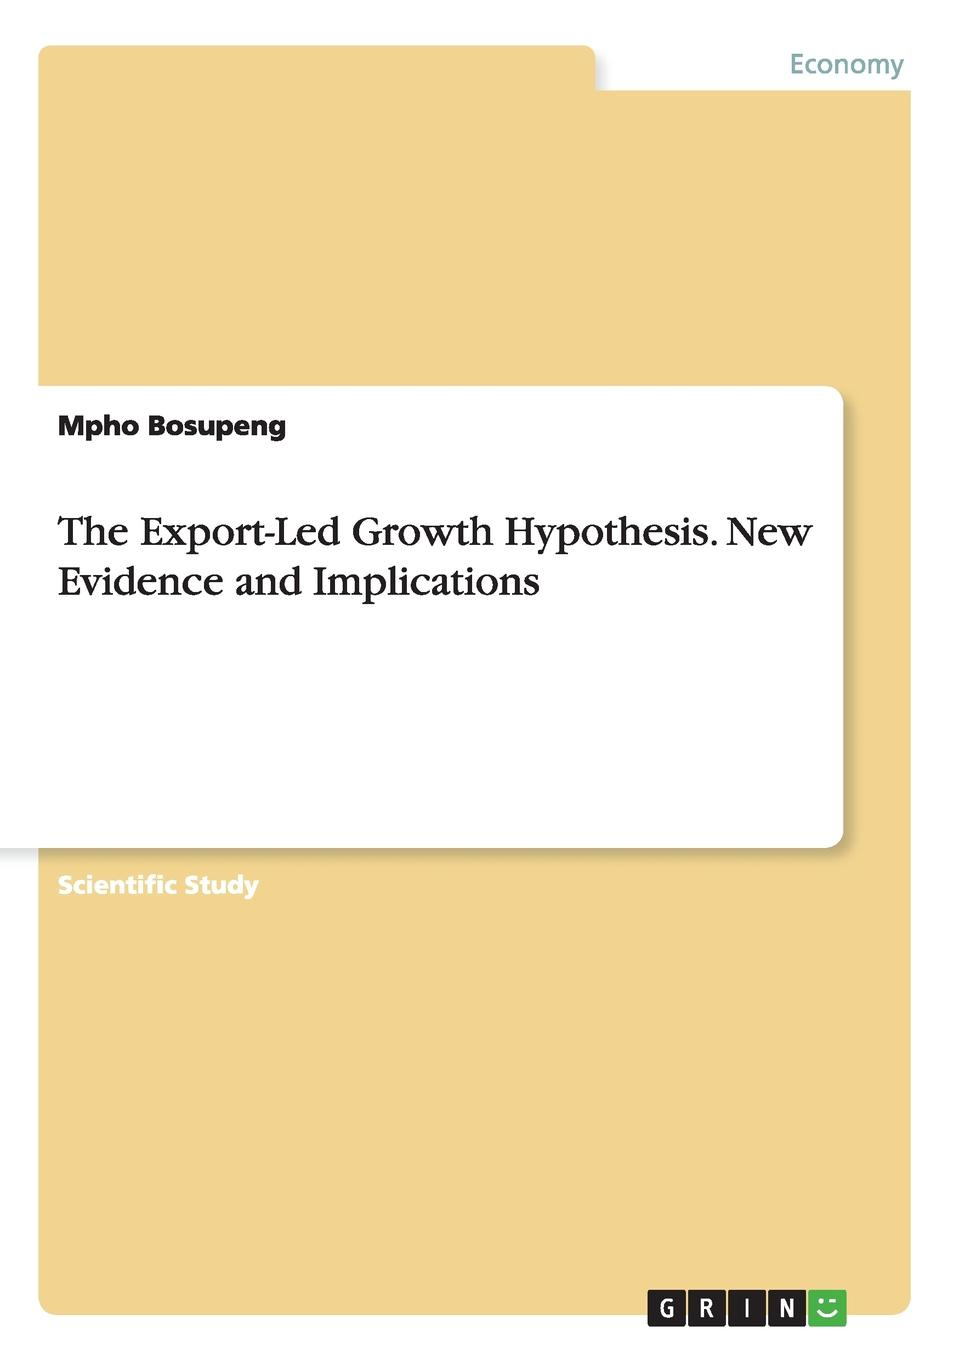 Mpho Bosupeng The Export-Led Growth Hypothesis. New Evidence and Implications t omay energy consumption and economic growth evidence from nonlinear panel cointegration and causality tests